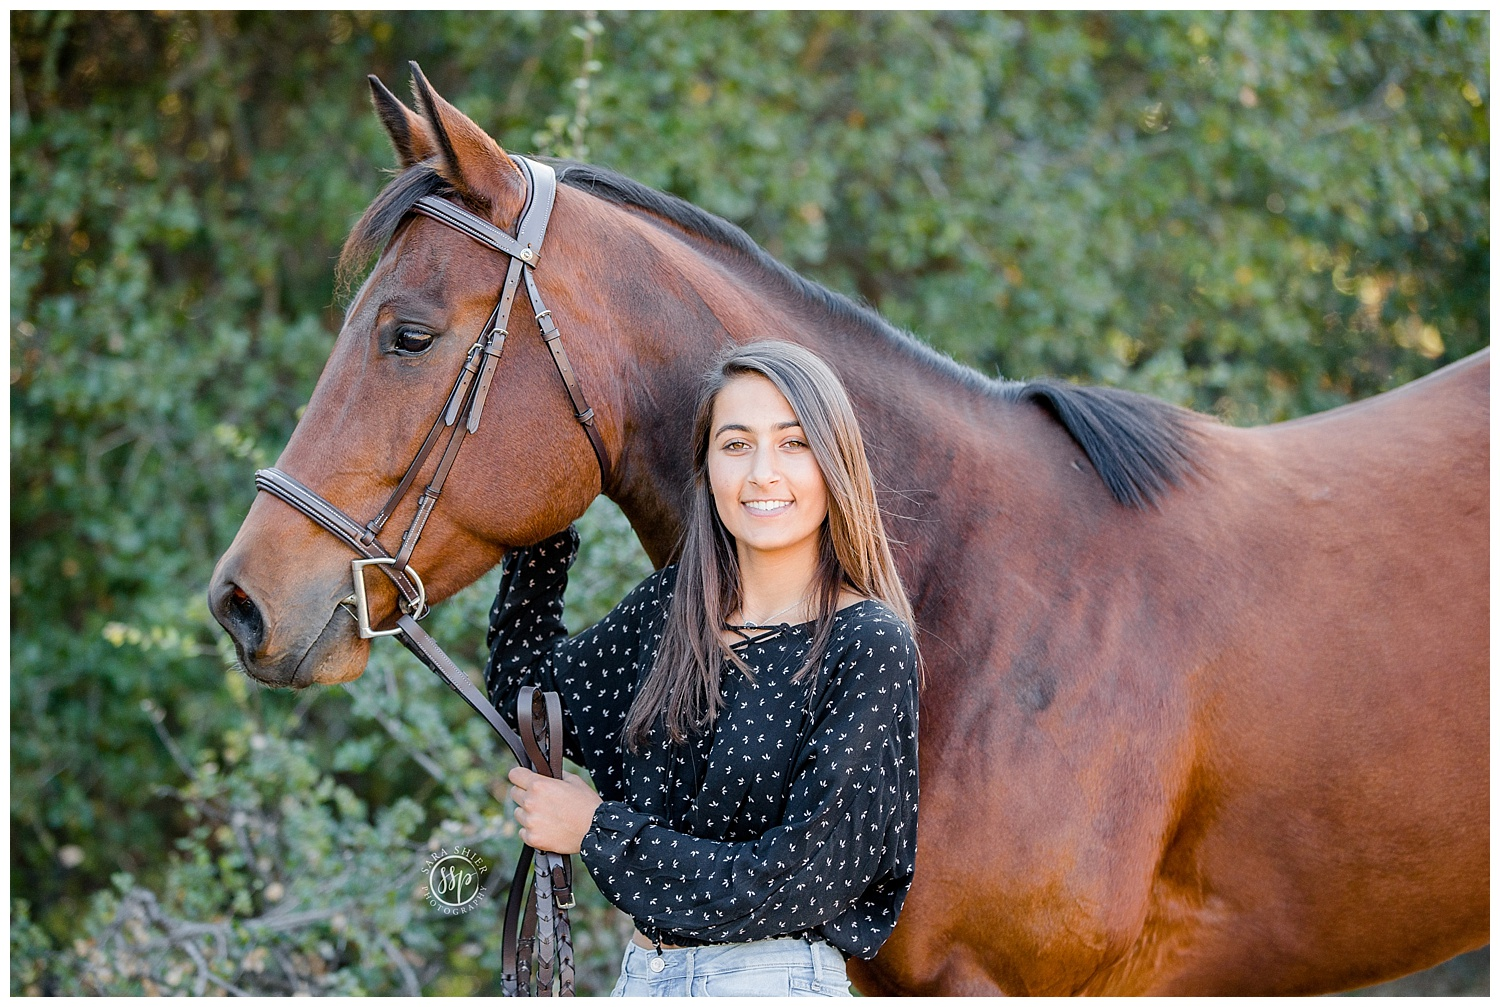 Black Background Horse Rider Equine Photographer Southern California Sara Shier Photography SoCal Equestrian Cowgirl_0034.jpg